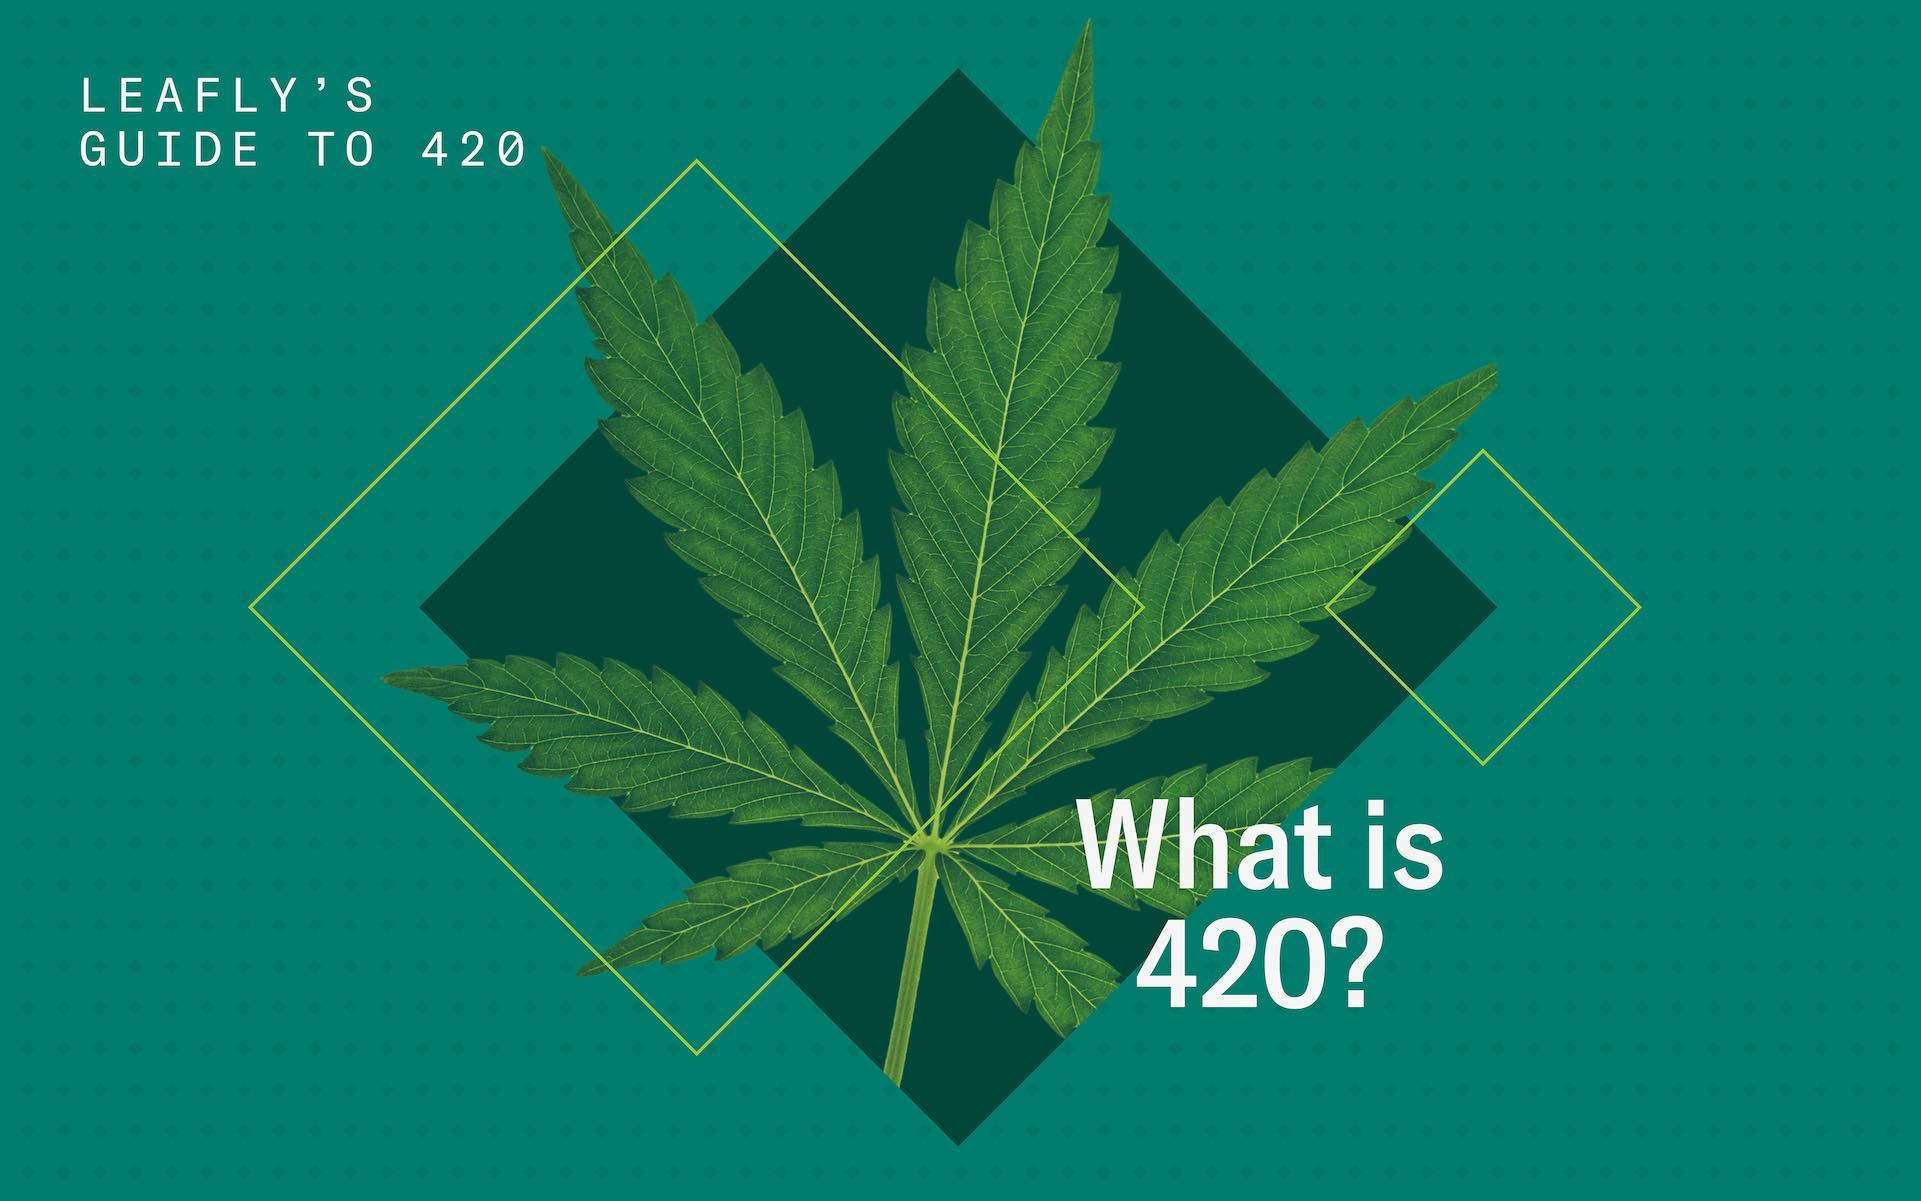 420 meaning